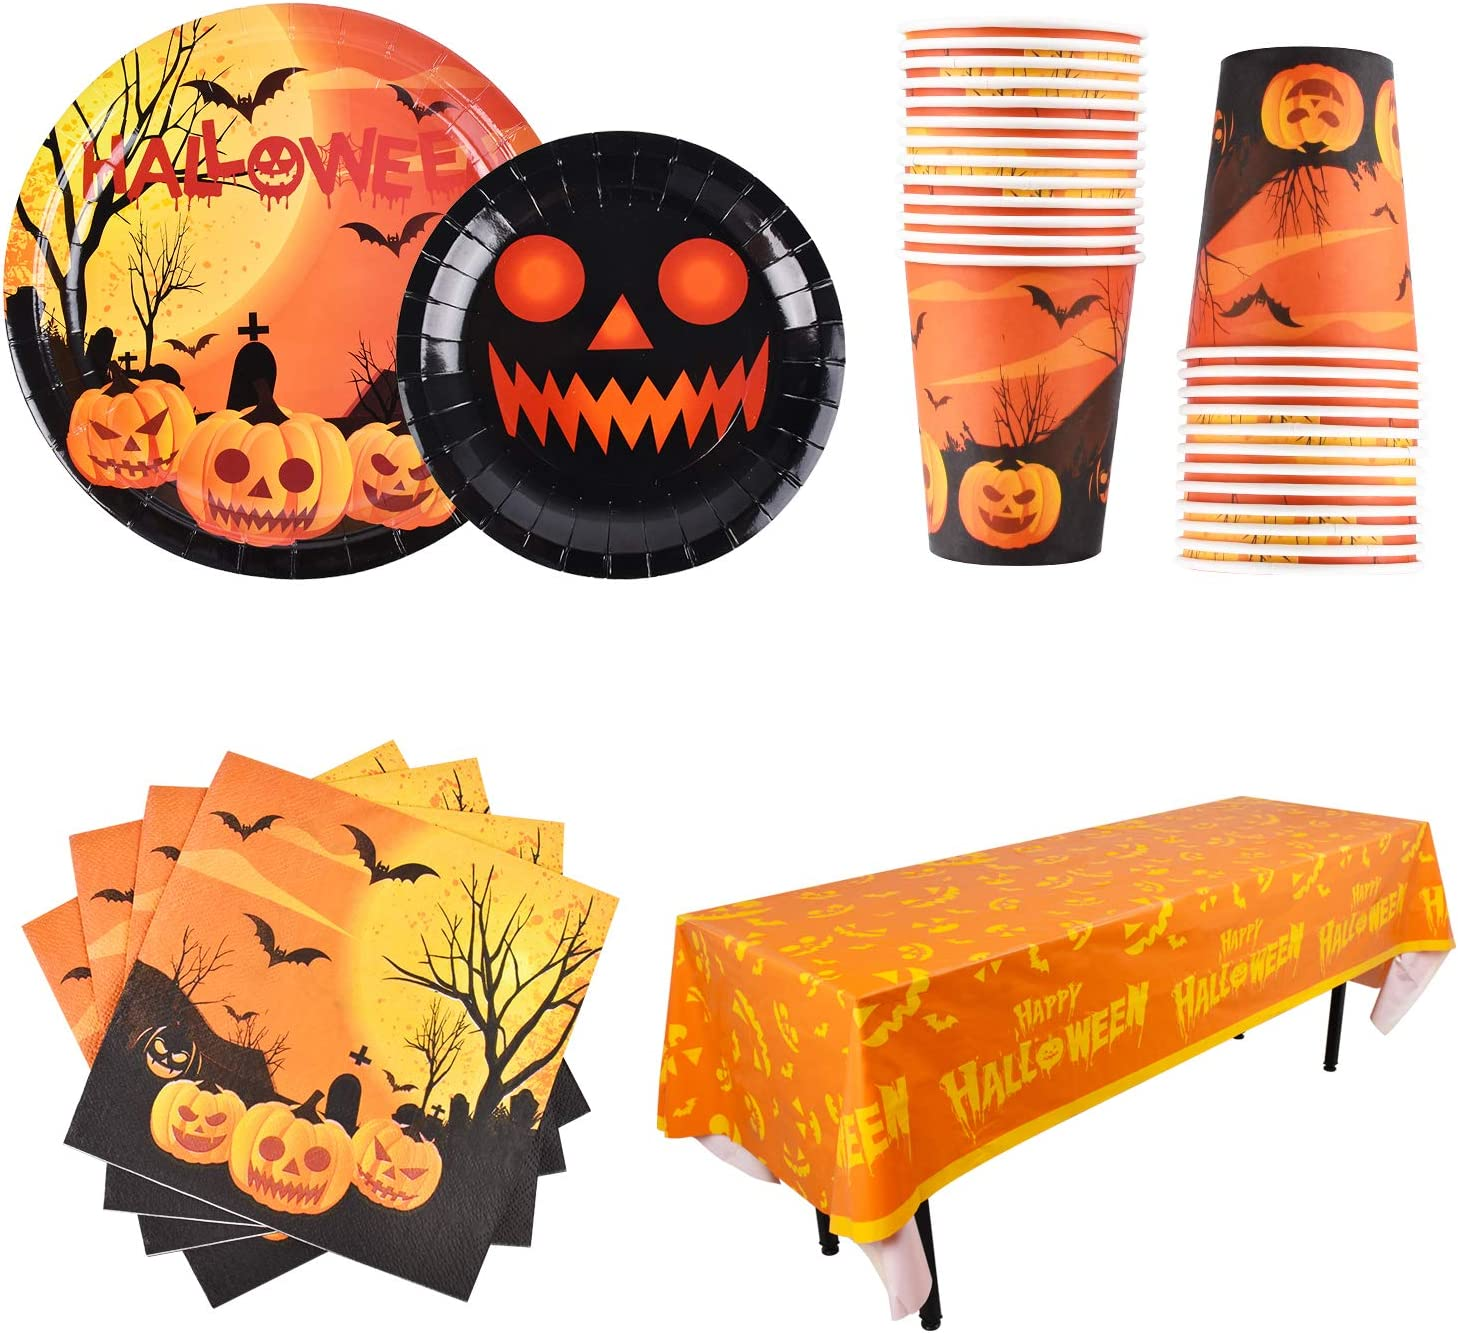 tablecover and banner Dinner and dessert plates Serves 16 napkins Halloween Party plates pack set cups